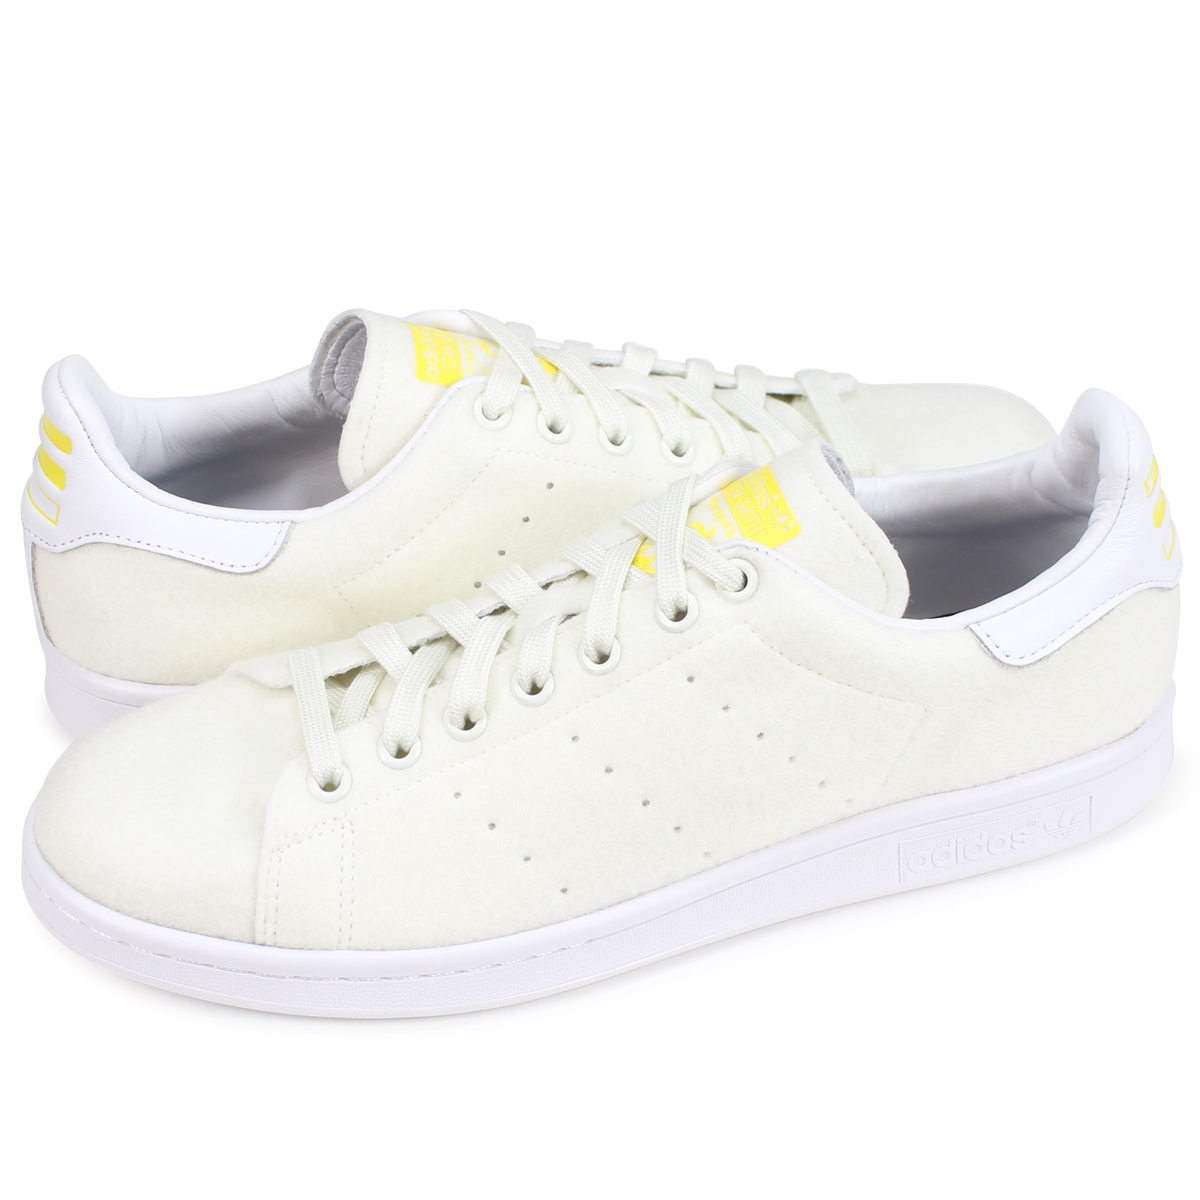 5b6b57be5c adidas Originals PHARRELL WILLIAMS STAN SMITH TENNIS PACK Adidas originals Stan  Smith men sneakers B25390 white  load planned Shinnyu load in reservation  ...